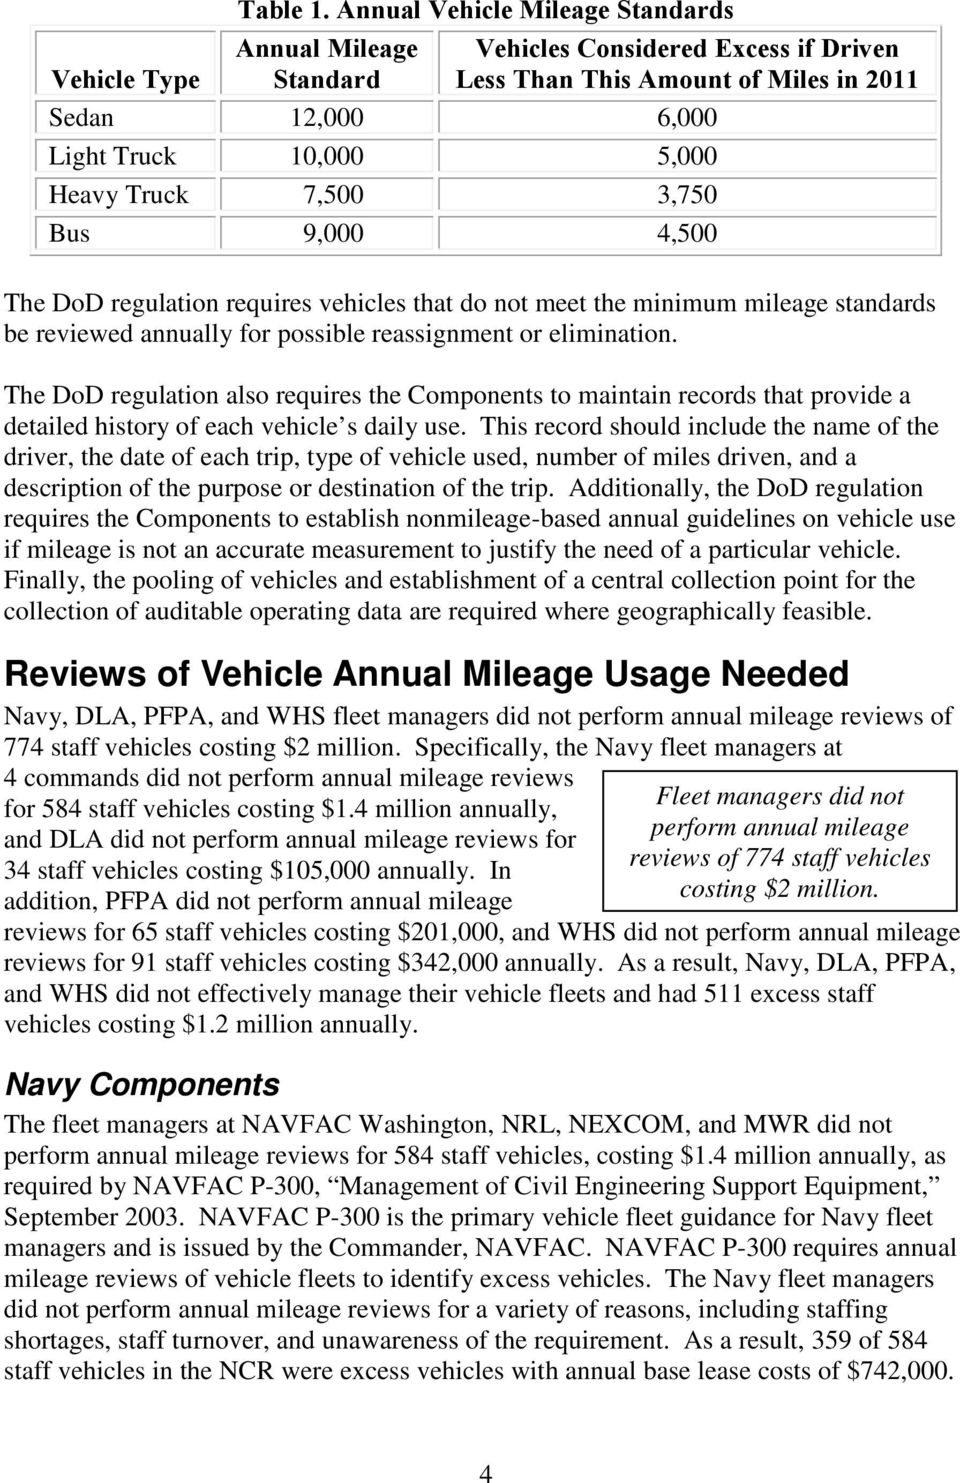 regulation requires vehicles that do not meet the minimum mileage standards be reviewed annually for possible reassignment or elimination.